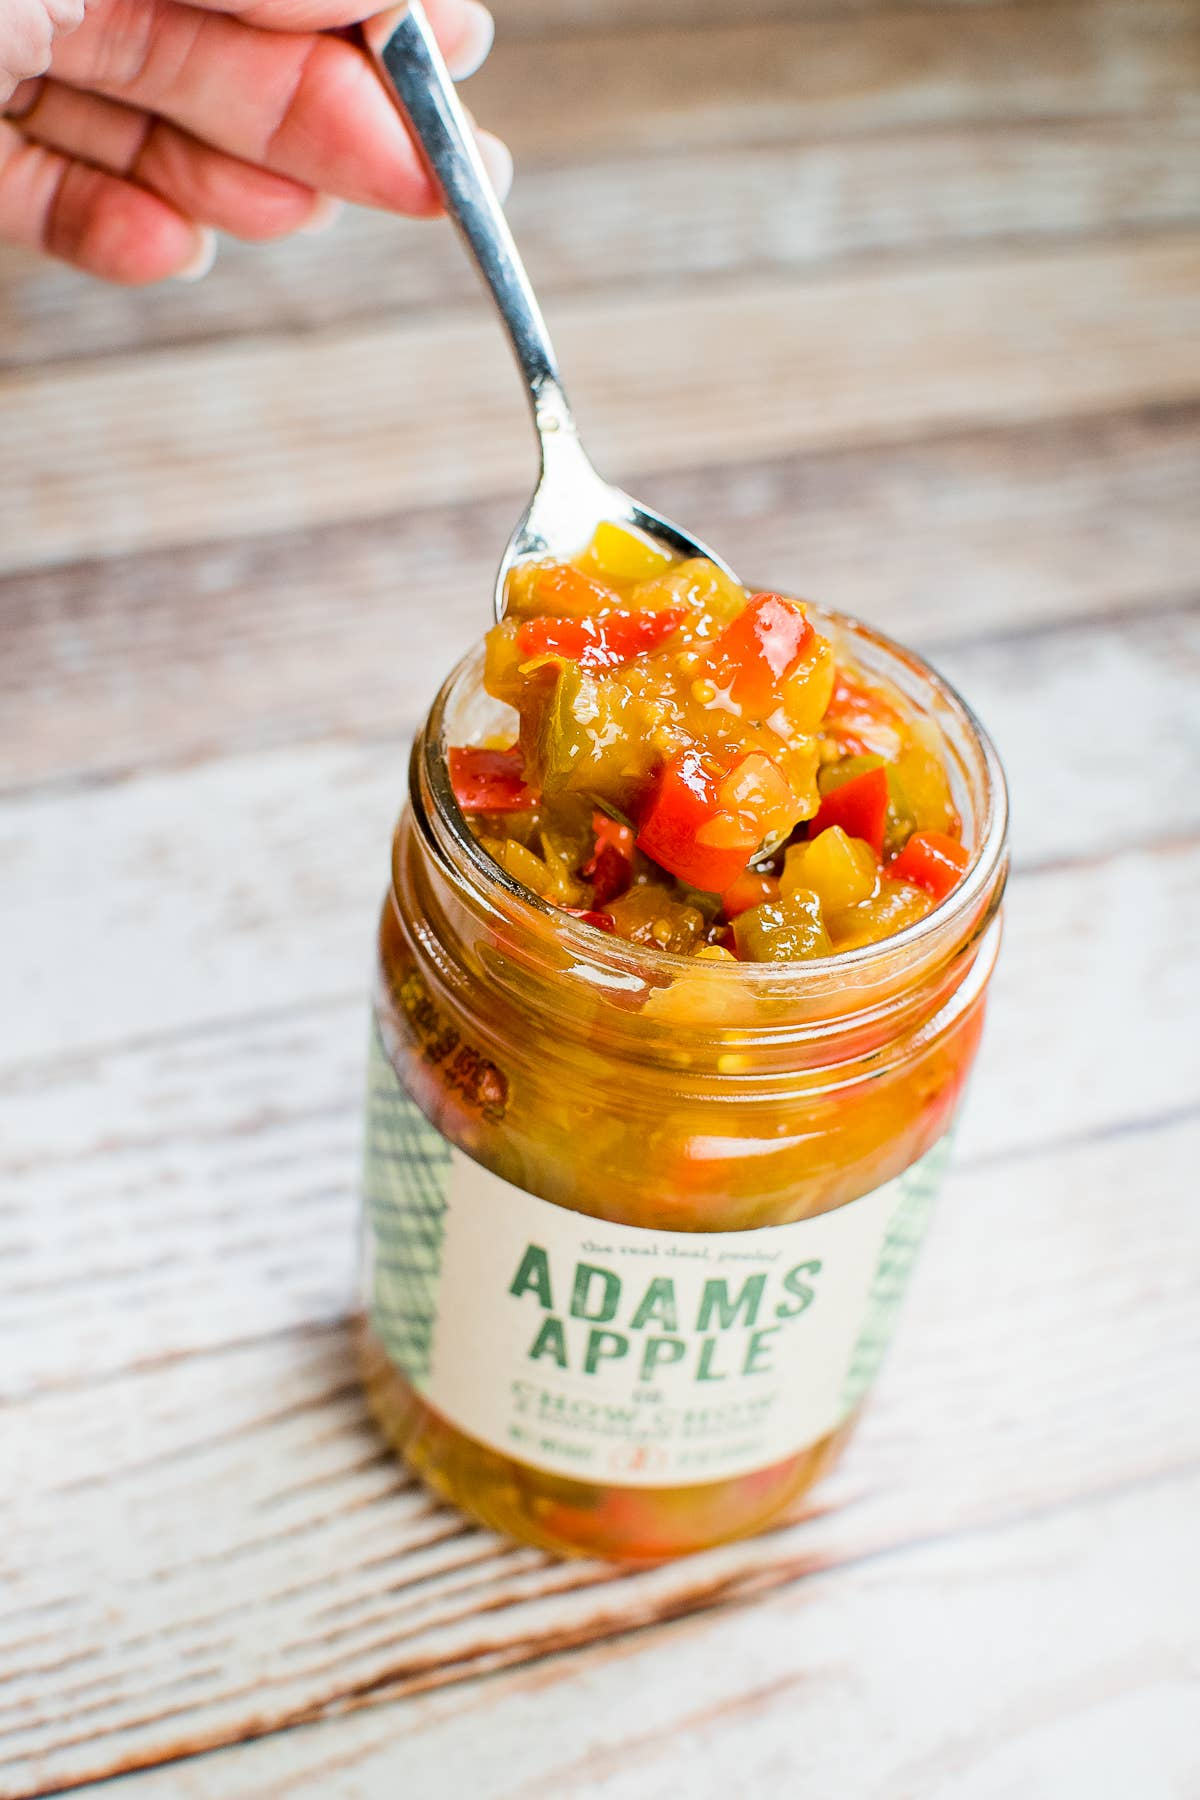 Adams Apple Chow Chow (A Southern Relish) | Trada Marketplace